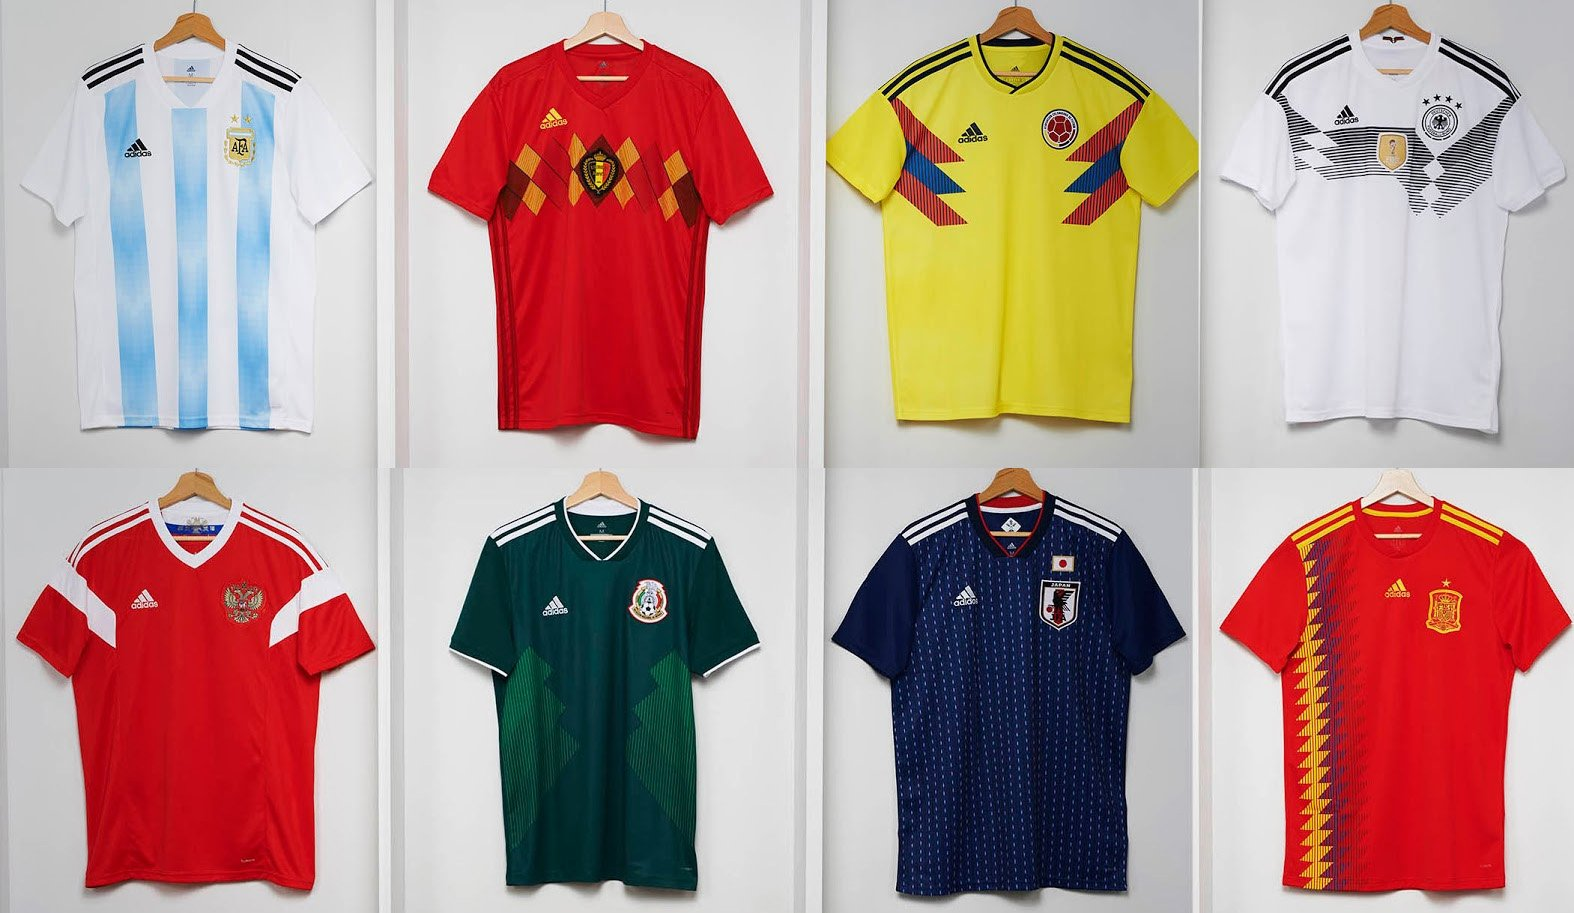 Os millennials mudaram até as camisetas da Copa do Mundo - 20 05 ... d903fd37e376d